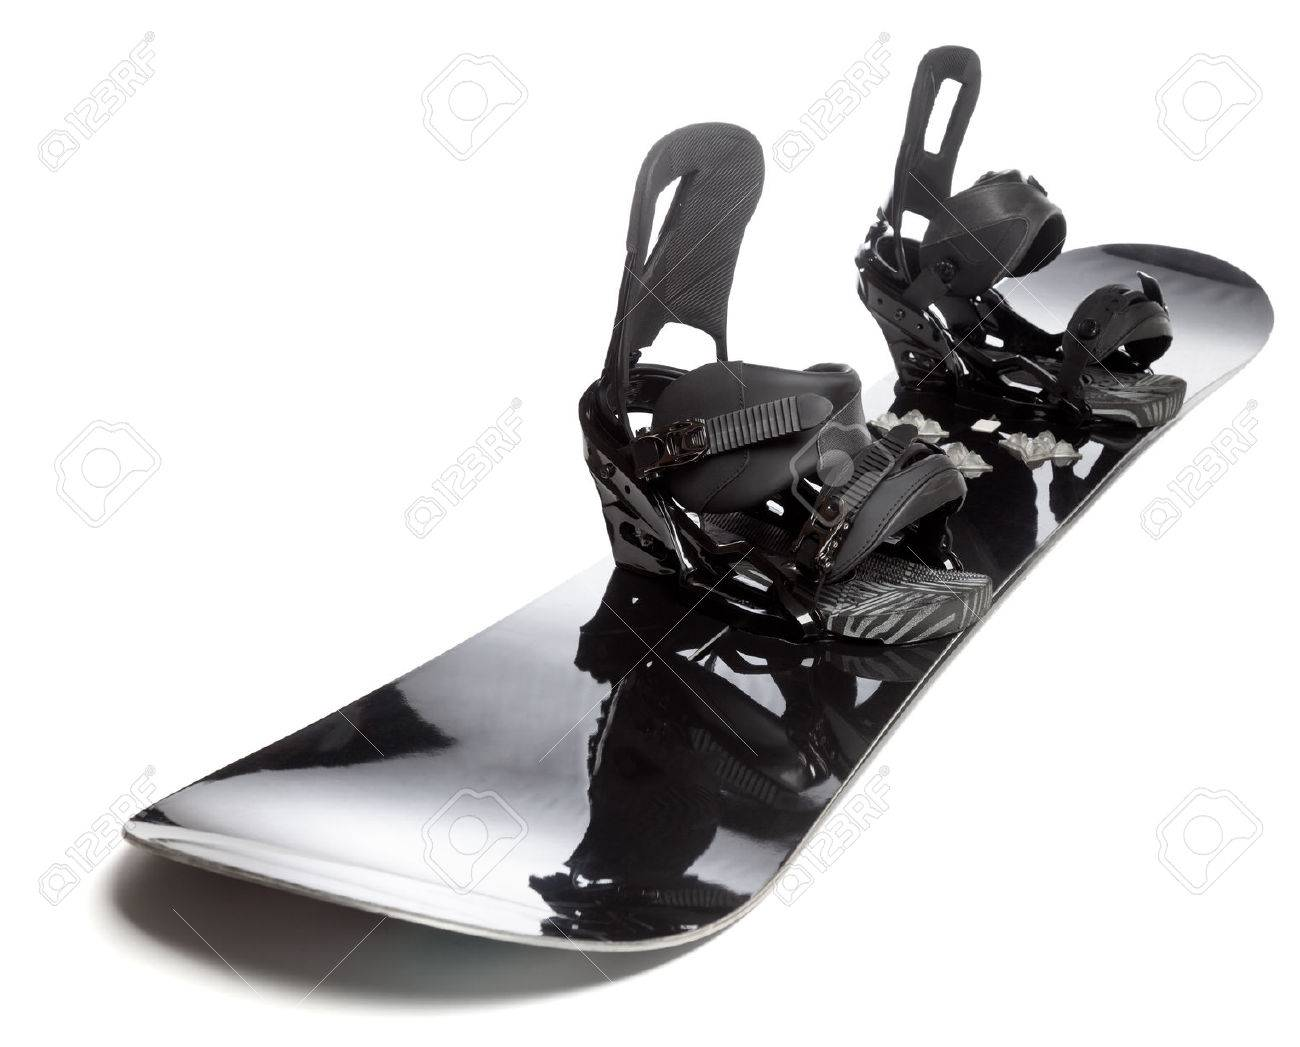 Snowboard with bindings similar-image